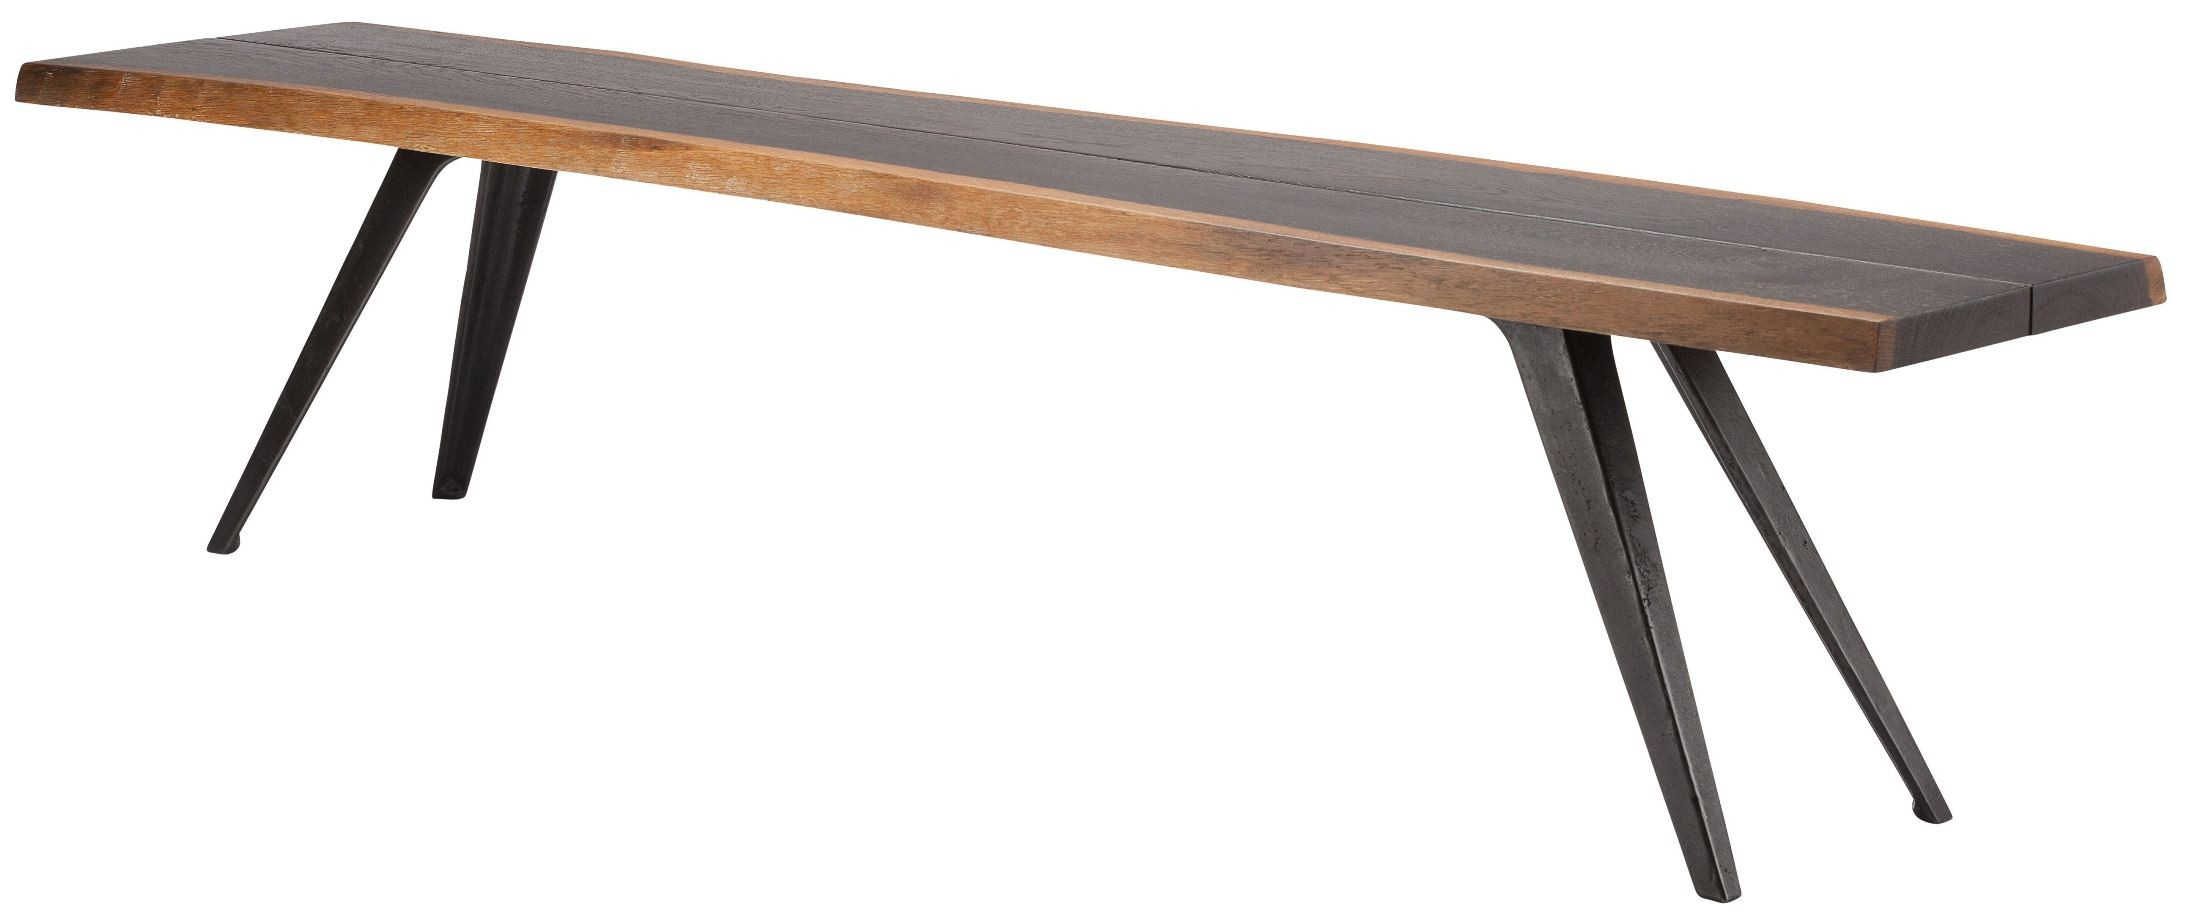 Vega 75 Seared Wood And Black Metal Dining Bench From Nuevo Coleman Furniture